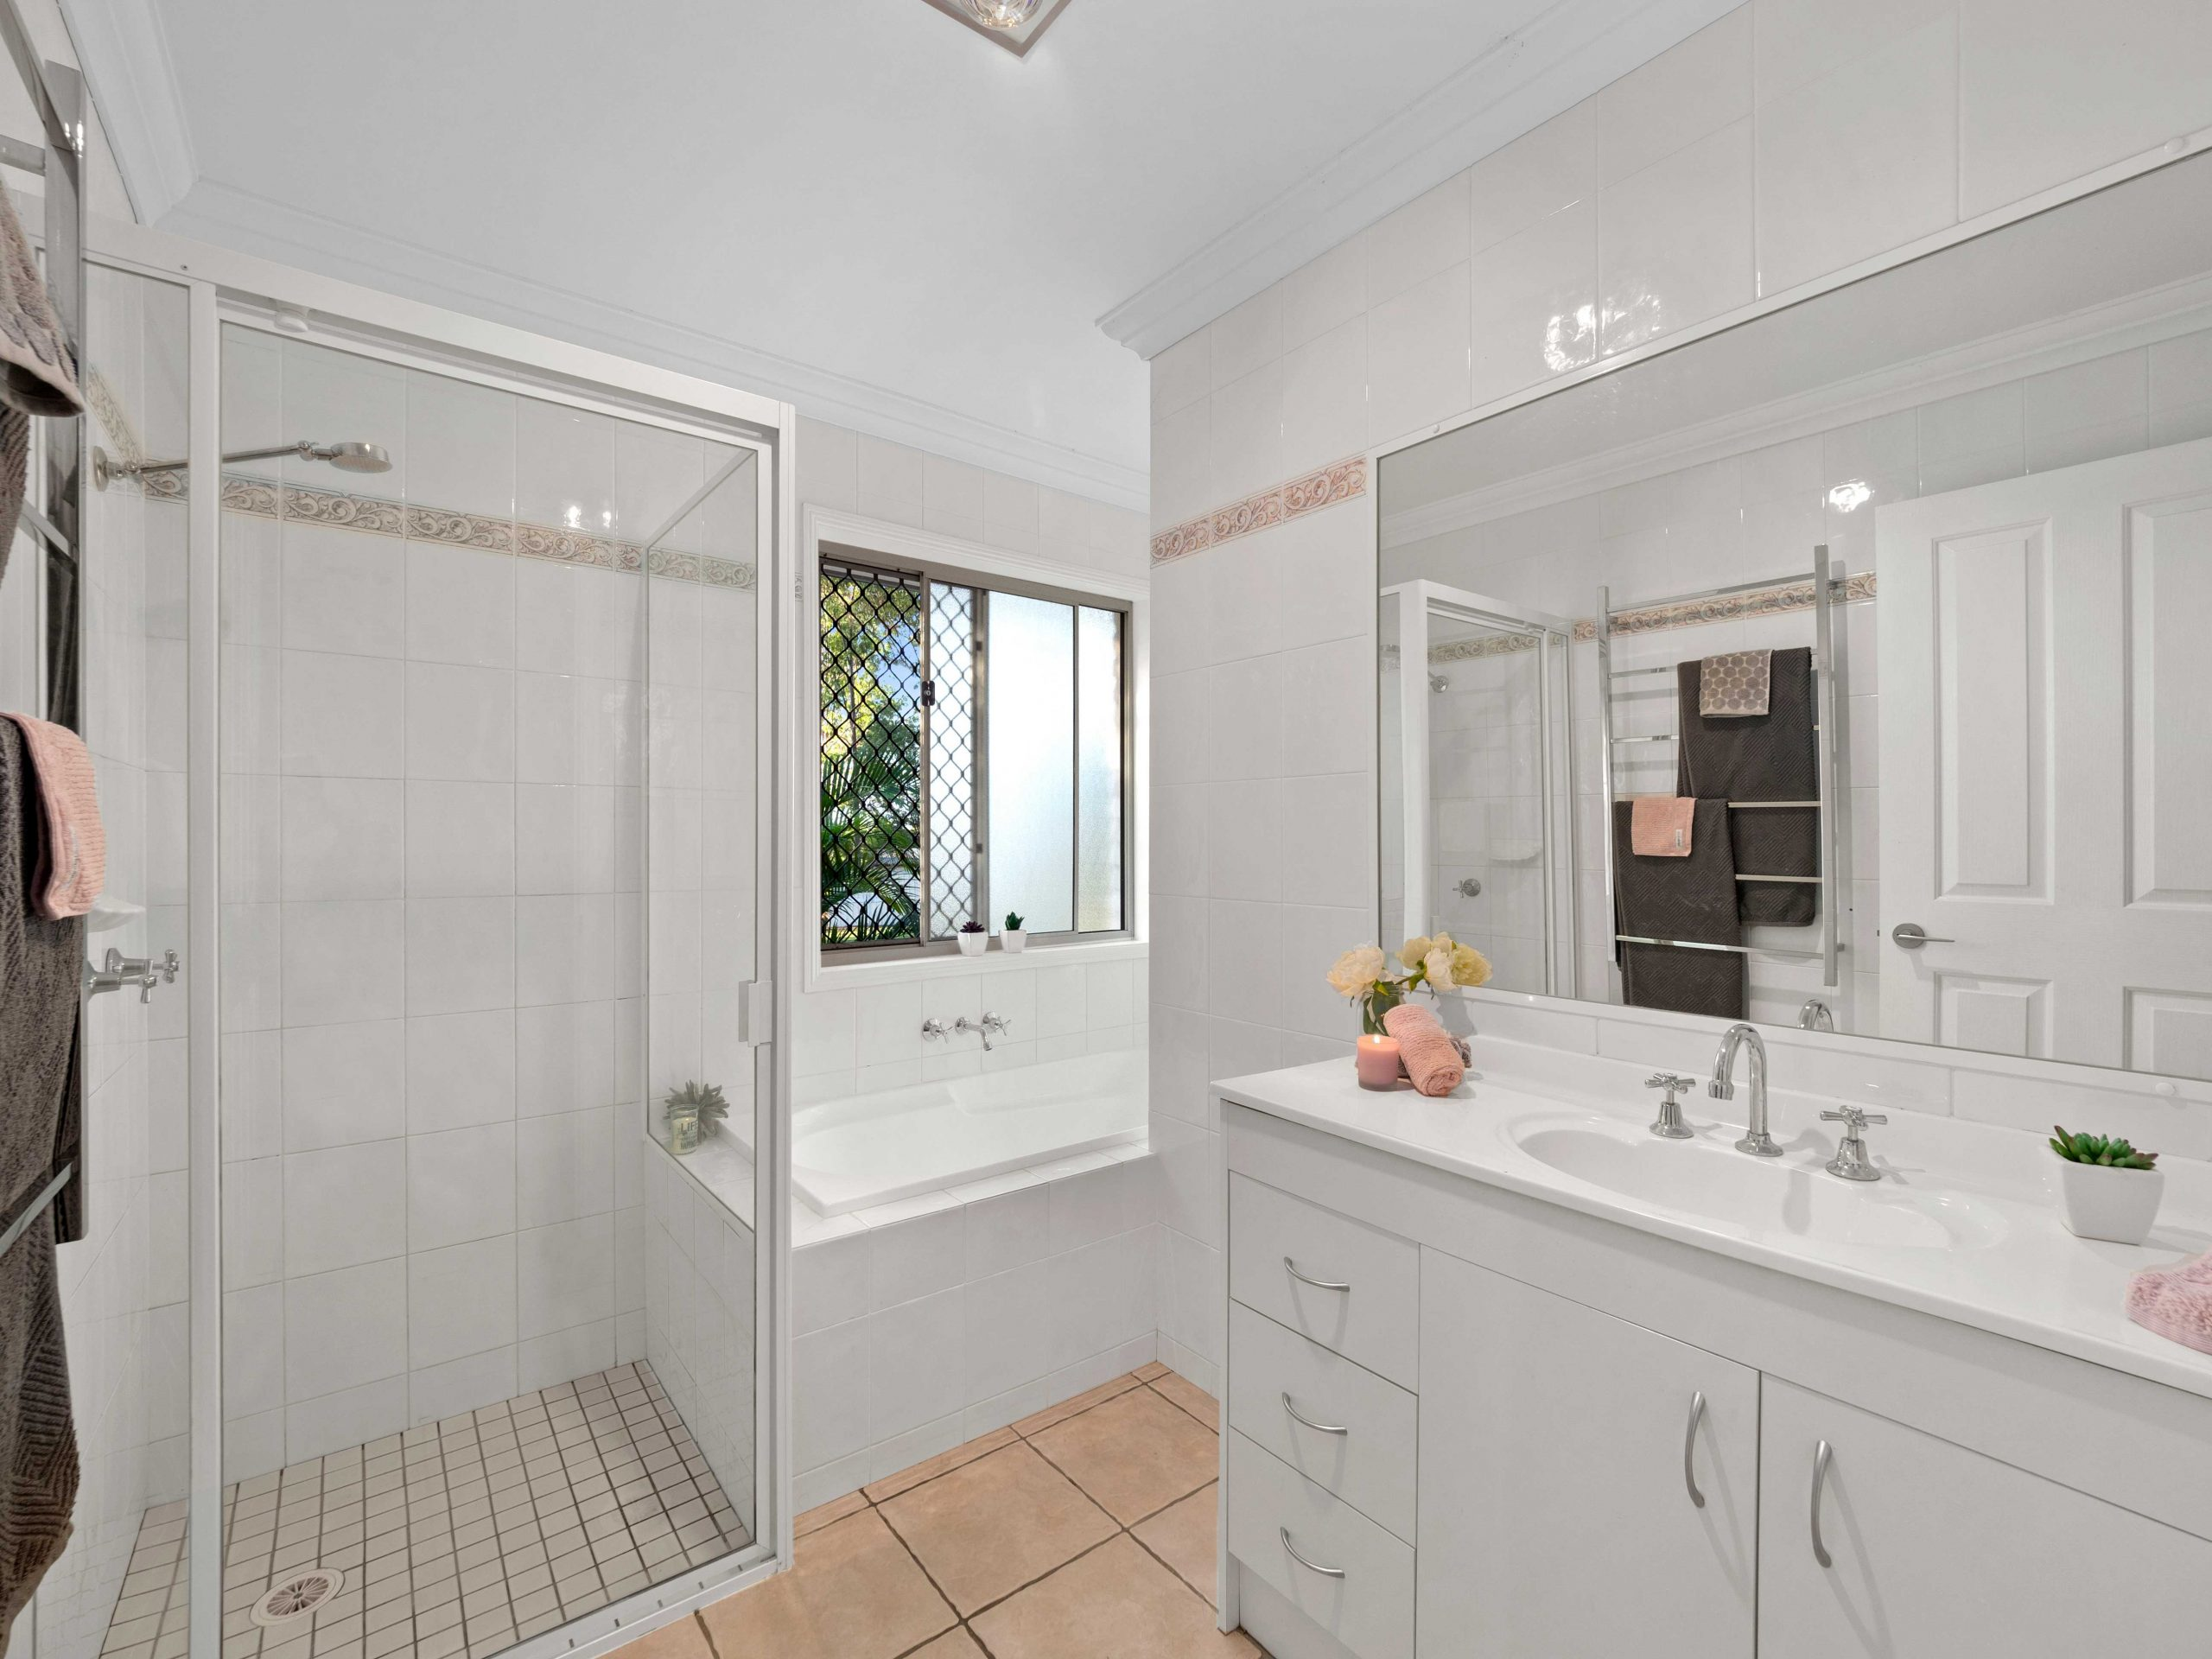 Capturing the bathroom of an acreage property for sale at Jimboomba